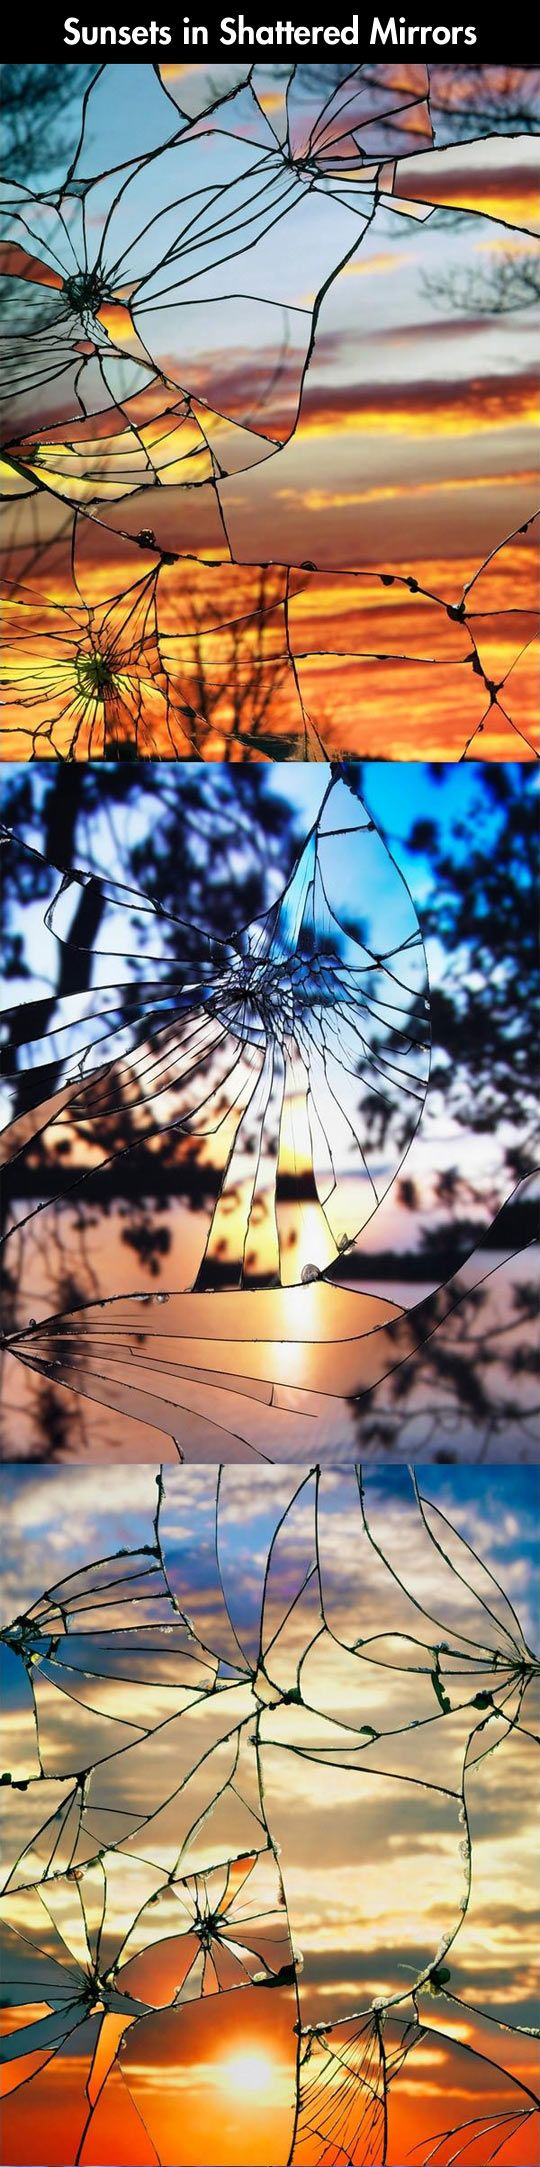 Sunsets in shattered mirrors